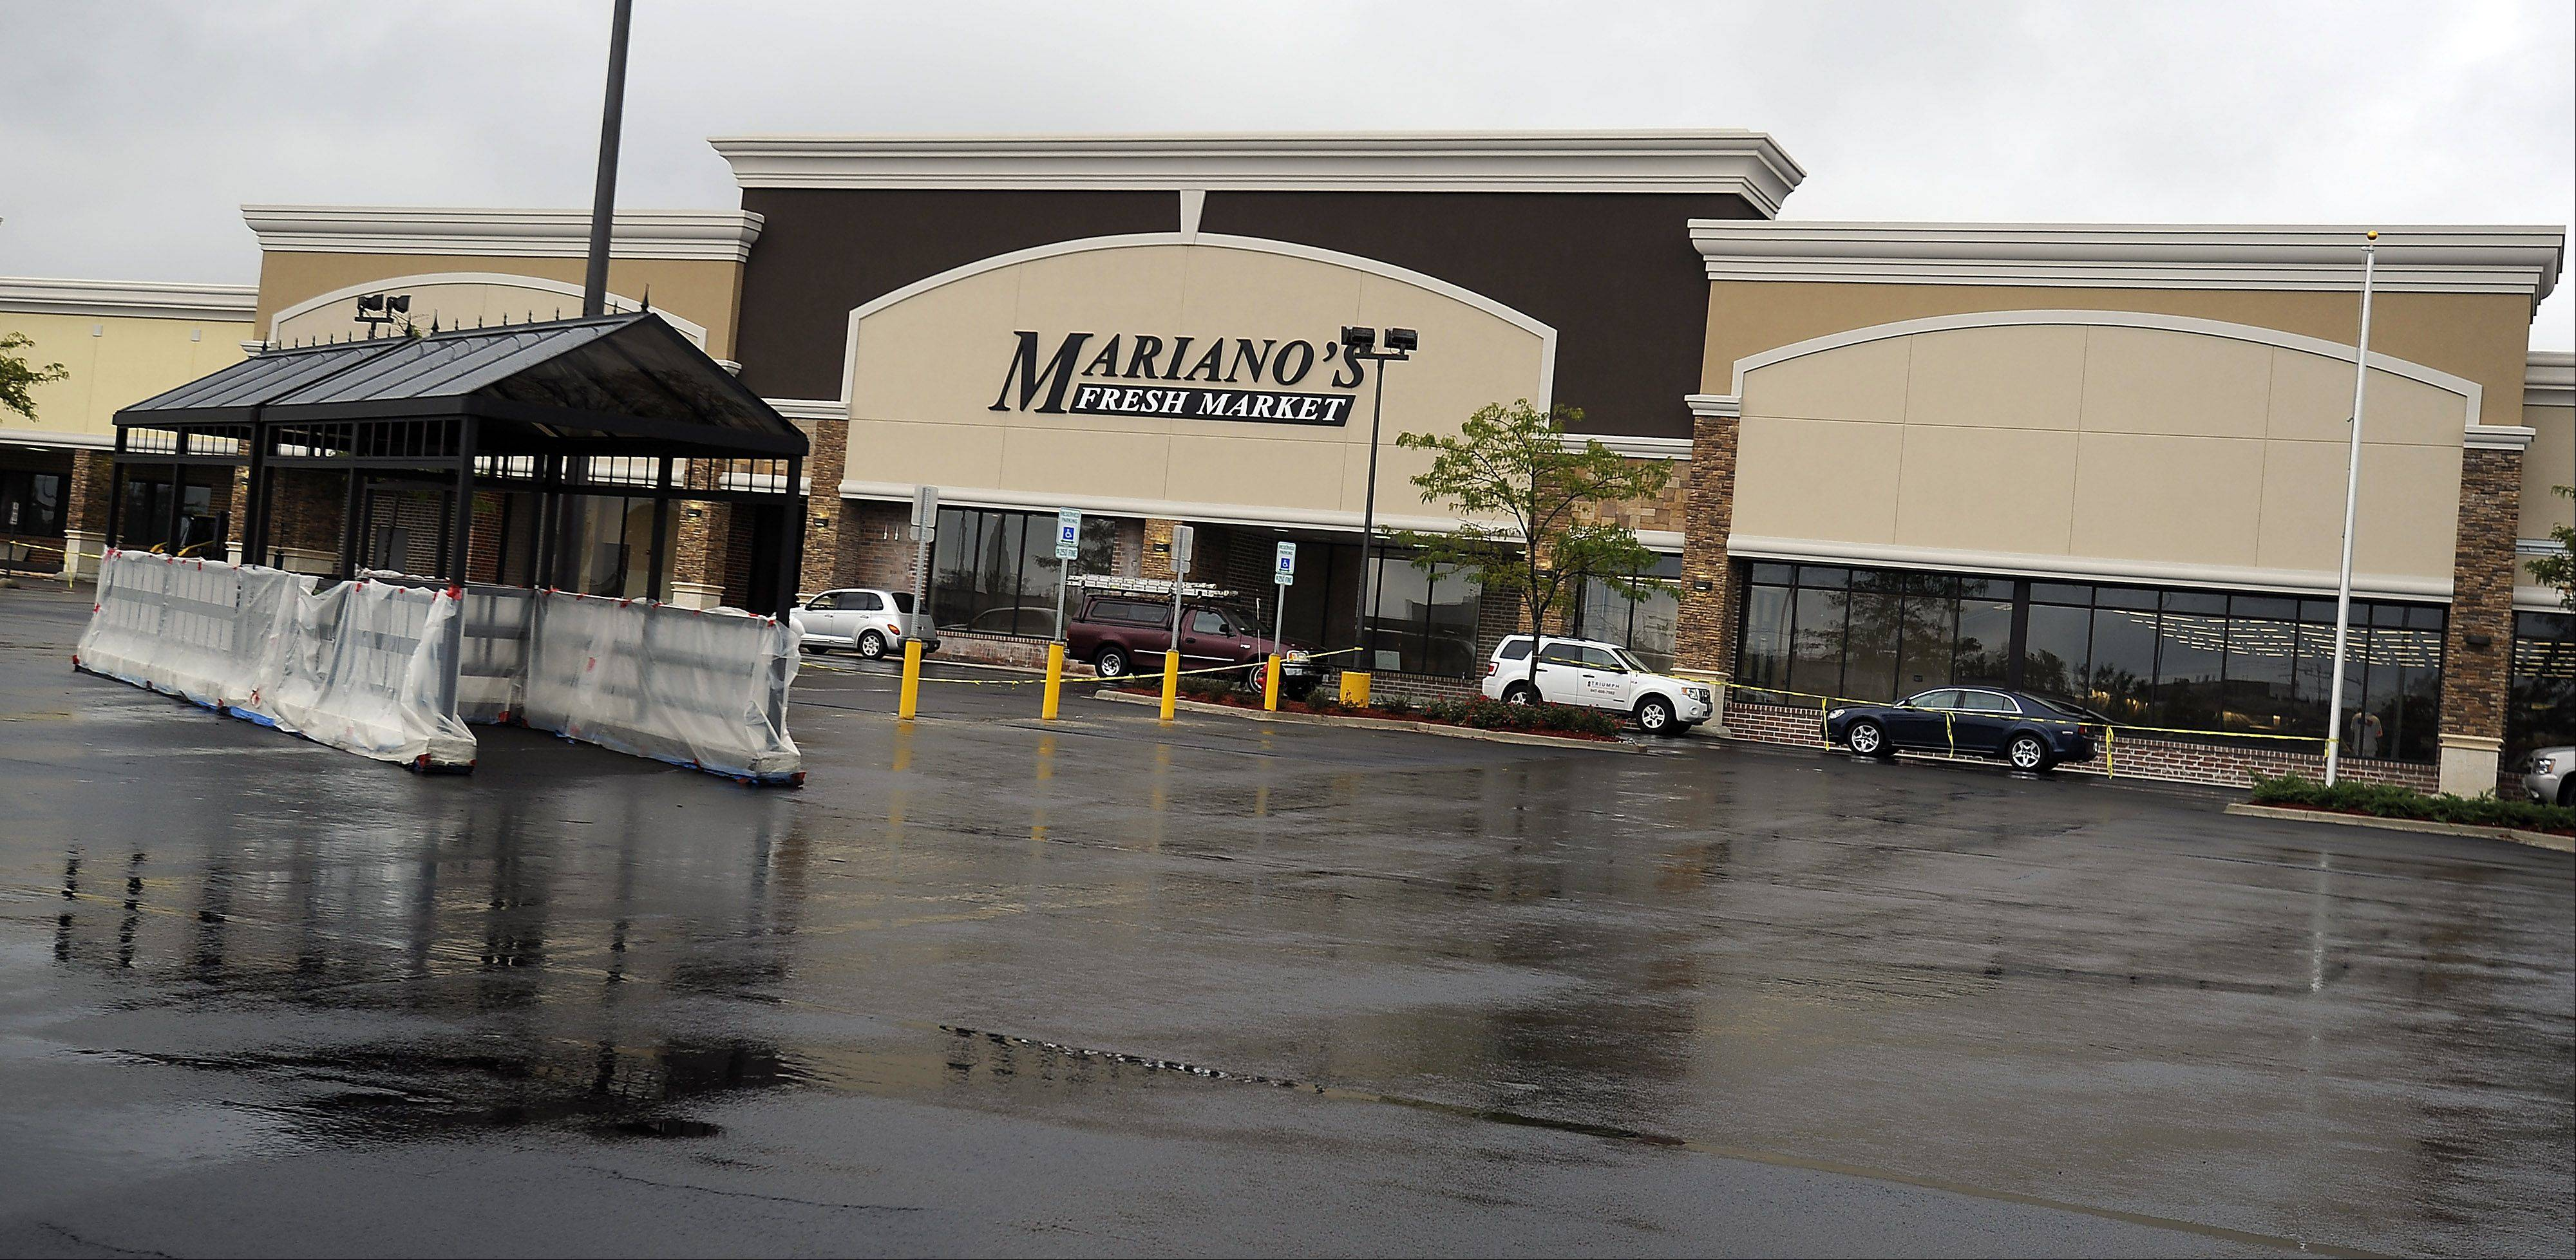 Hoffman Estates Mariano's slated to open Aug. 28